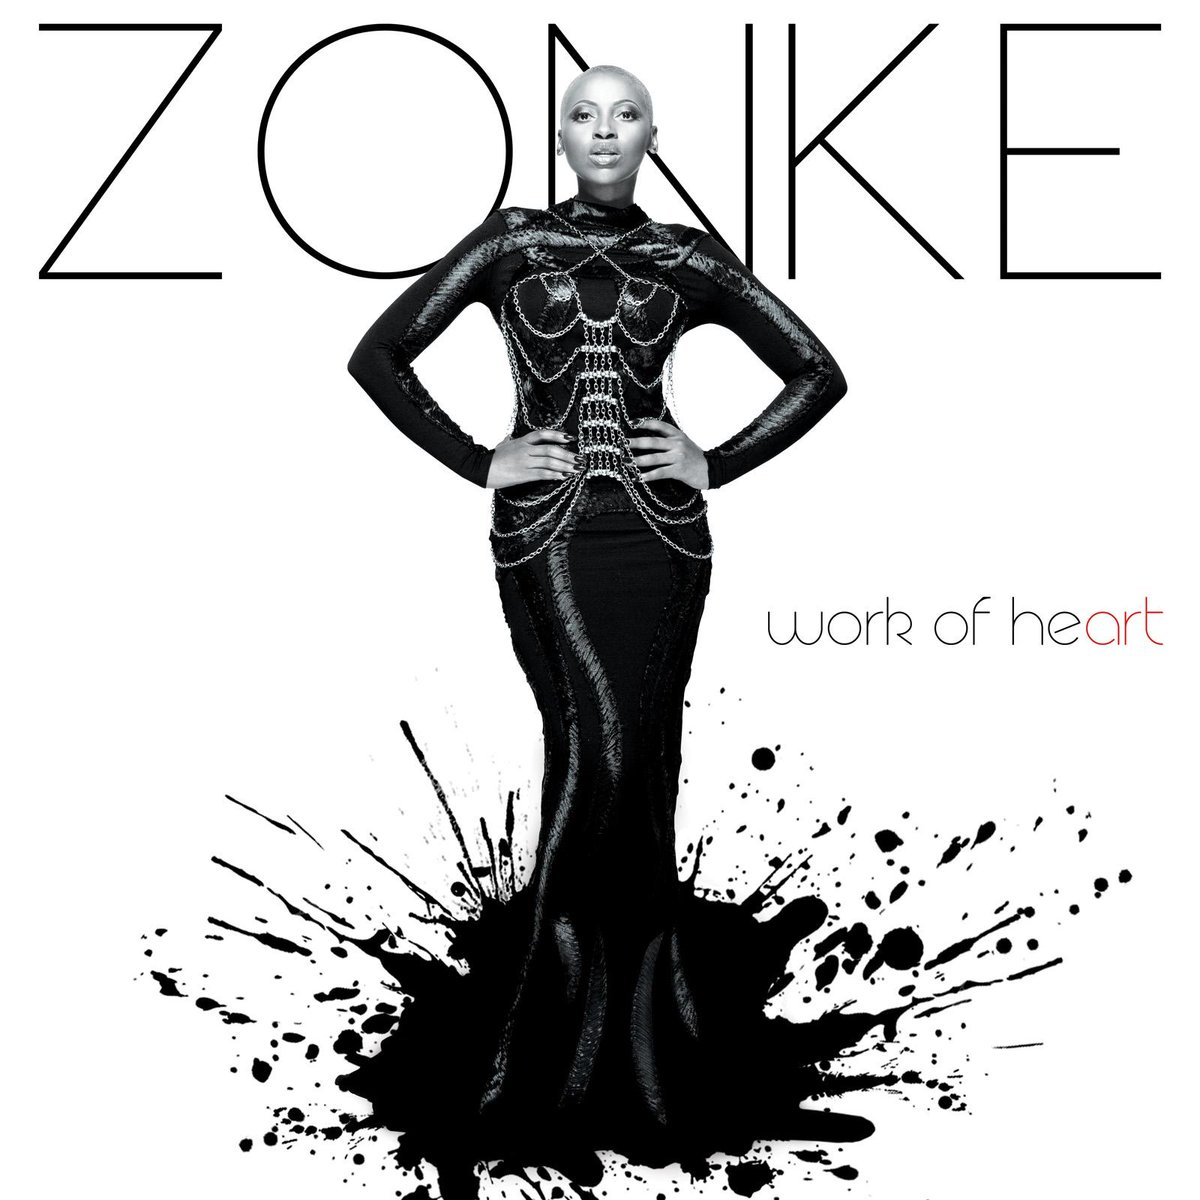 And here it is! My artwork for #WorkofHeart finally revealed! I am so happy to share this with all of you! http://t.co/IRck7un6rG